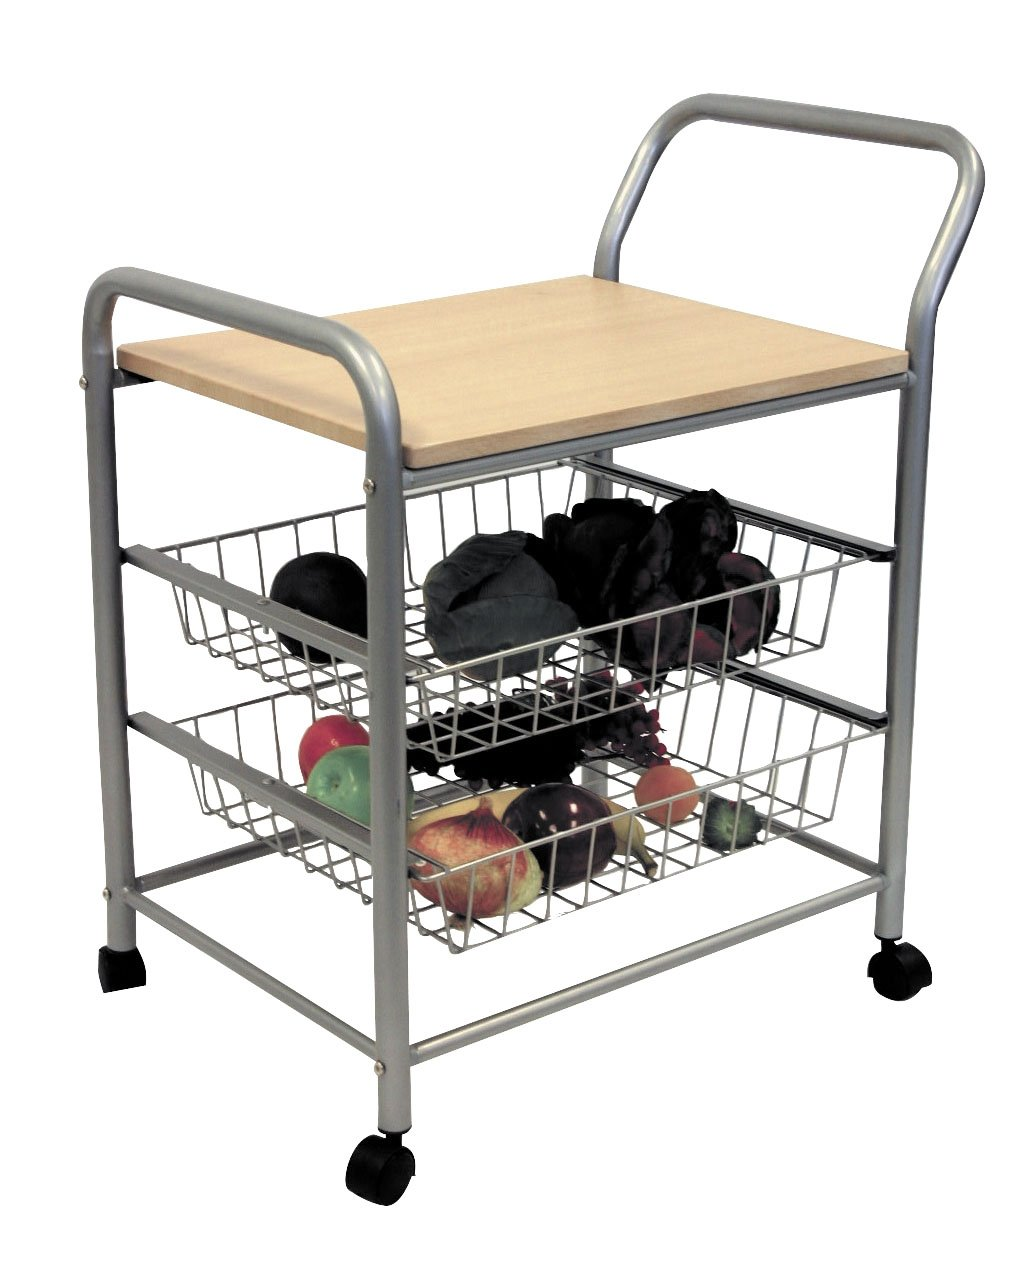 ORE International 3-Tier Metal Trolley on ideas to make kitchen cabinets, ideas to make shoe rack, ideas to make cooler, ideas to make home decor, ideas to make desk, ideas to make box,